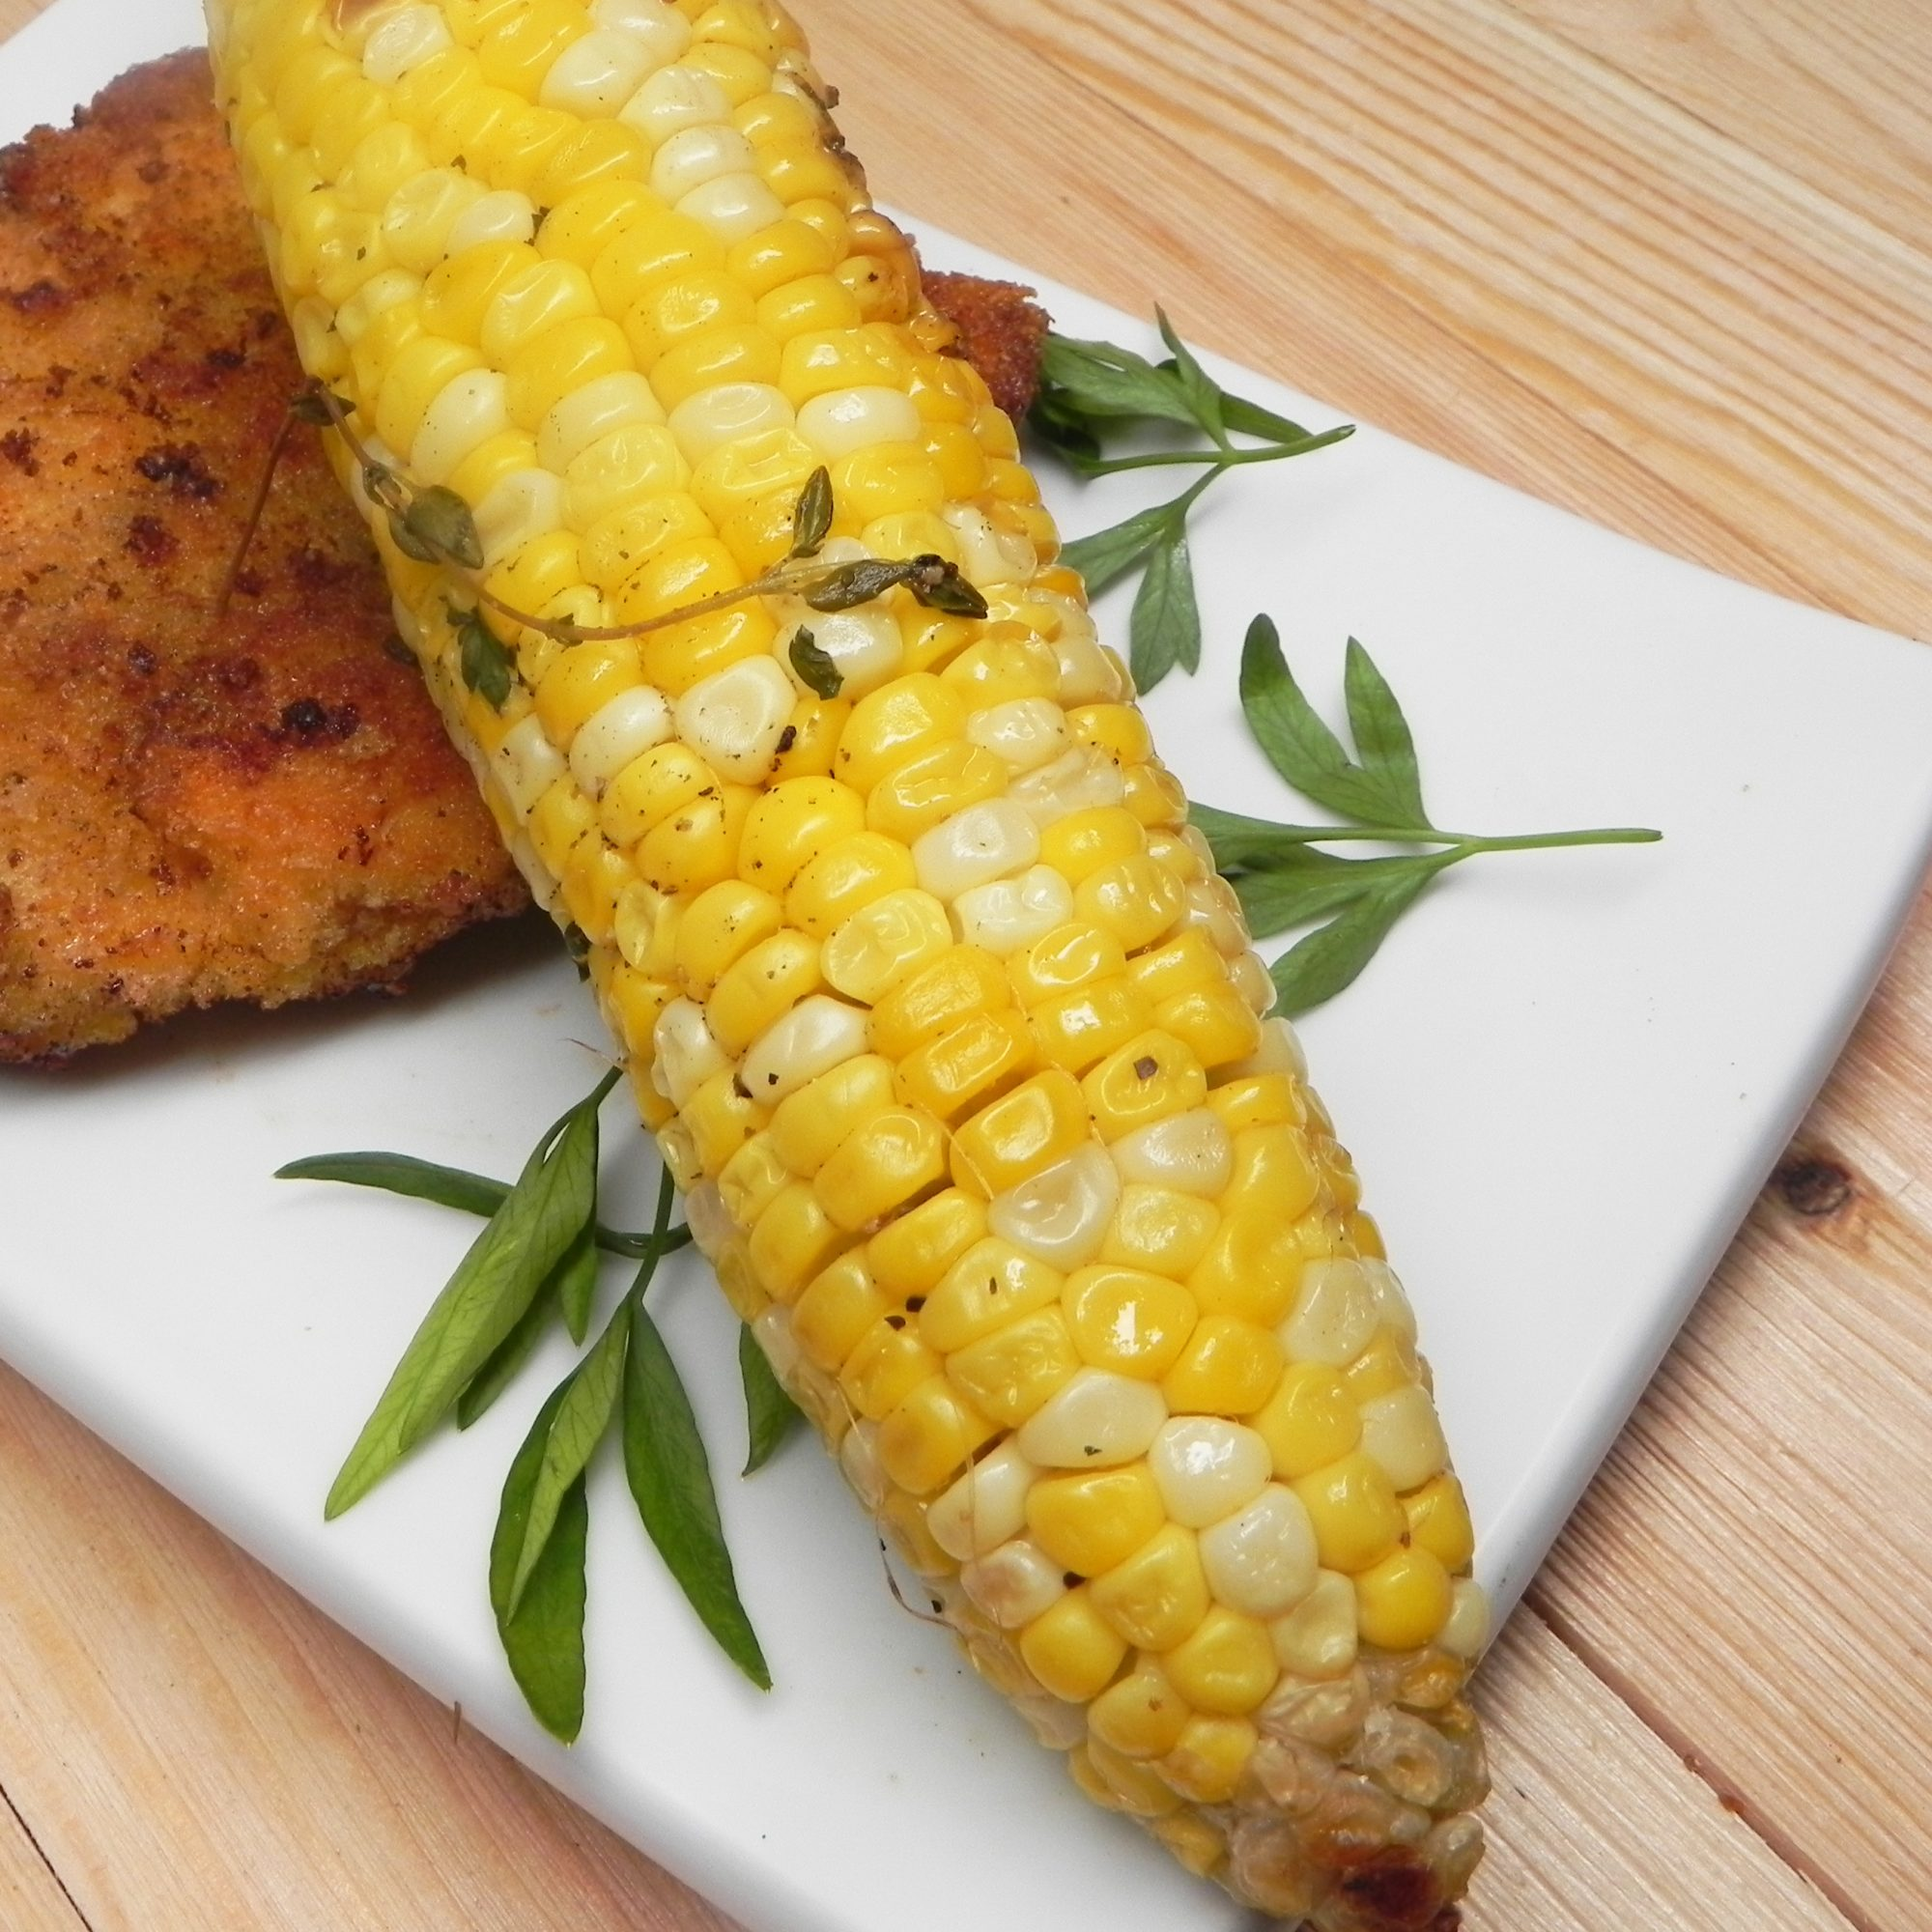 The grill isn't just for meaty mains. It enhances the flavor of plants, too. Case in point: corn on the cob.